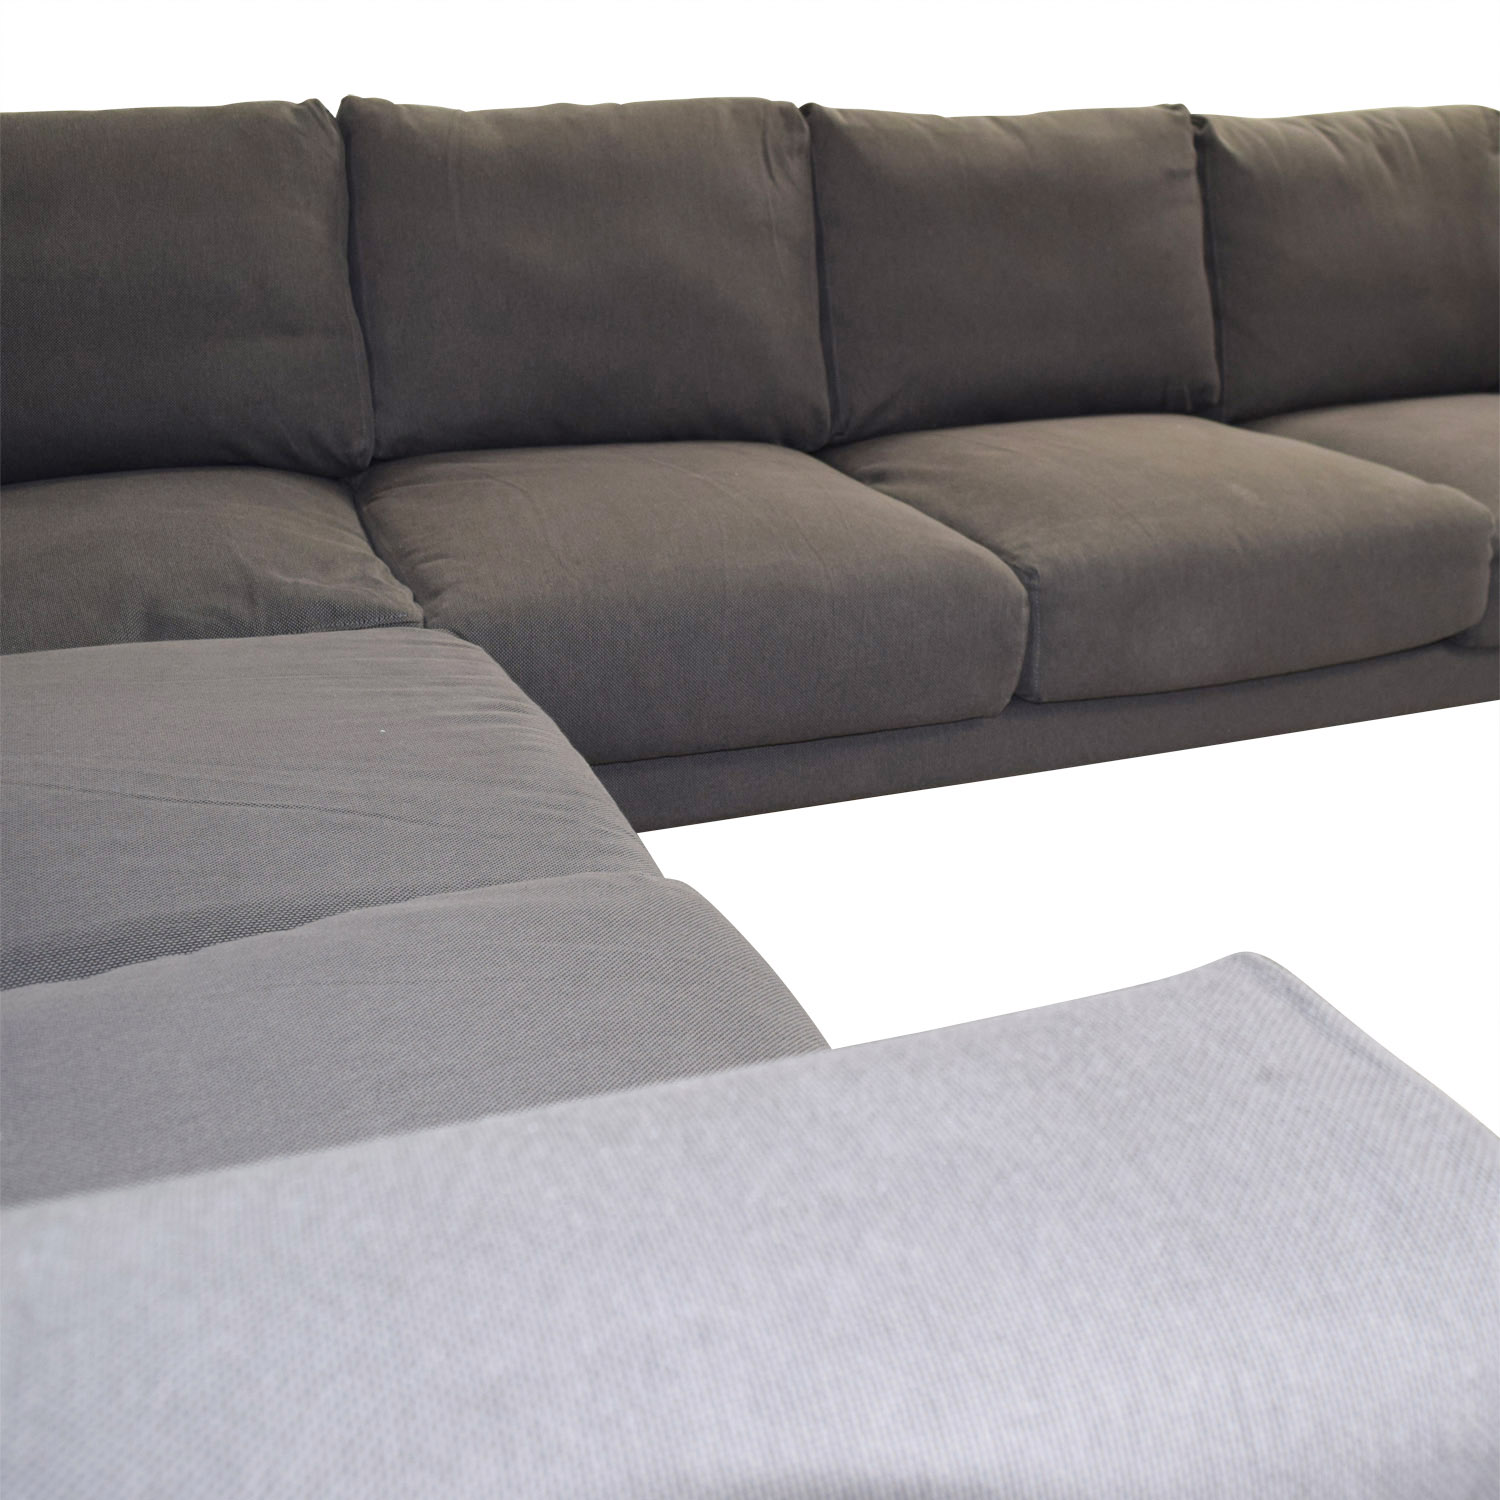 Ikea L Shaped Sofa Bed Dimensions 53 Off Ikea Ikea Norsborg Grey L Shaped Sectional Sofas